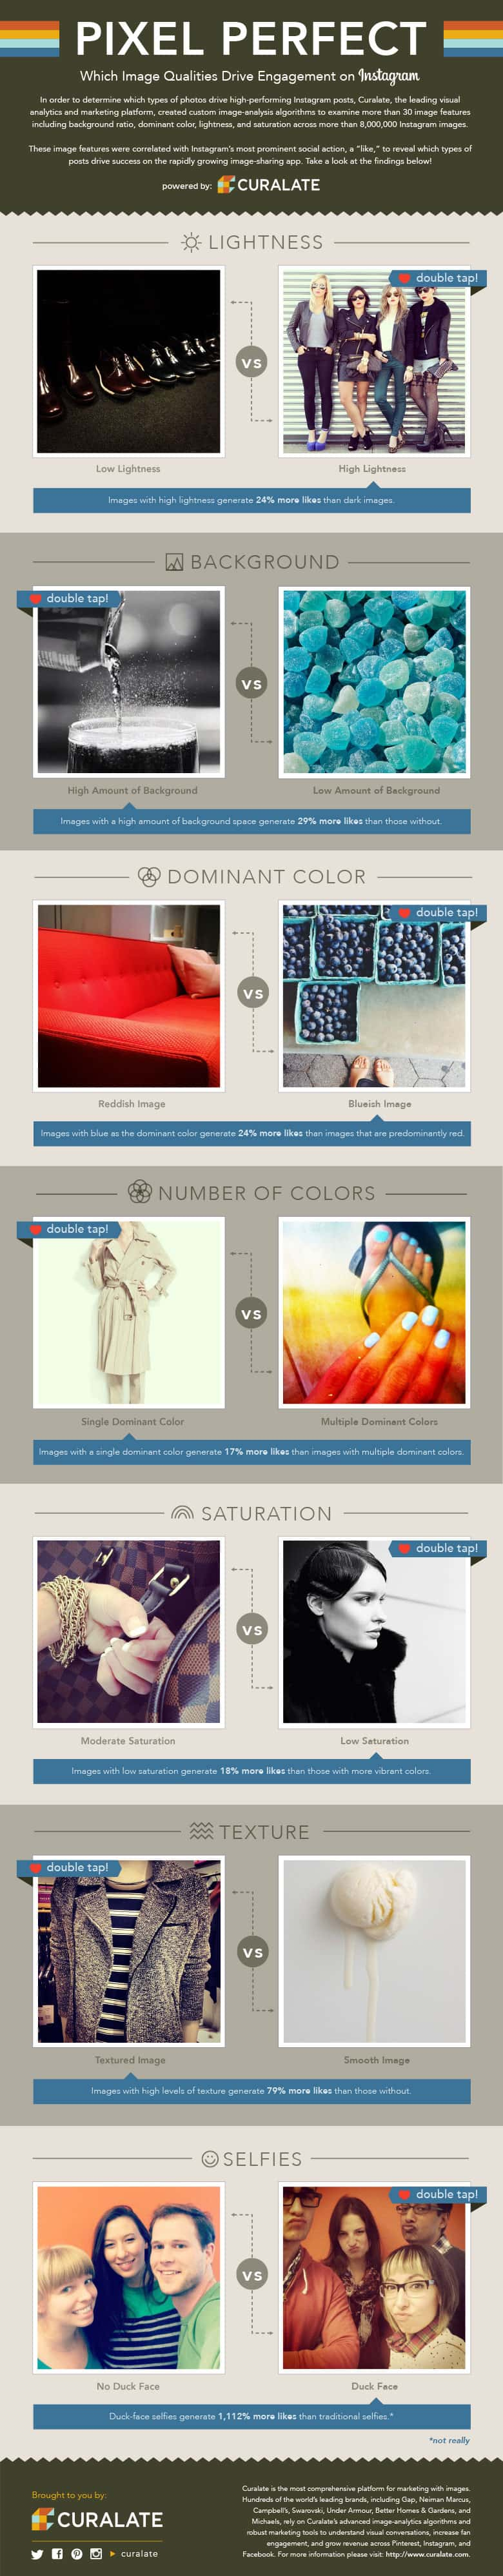 Visual content marketing research and tips to increase engagement on Instagram